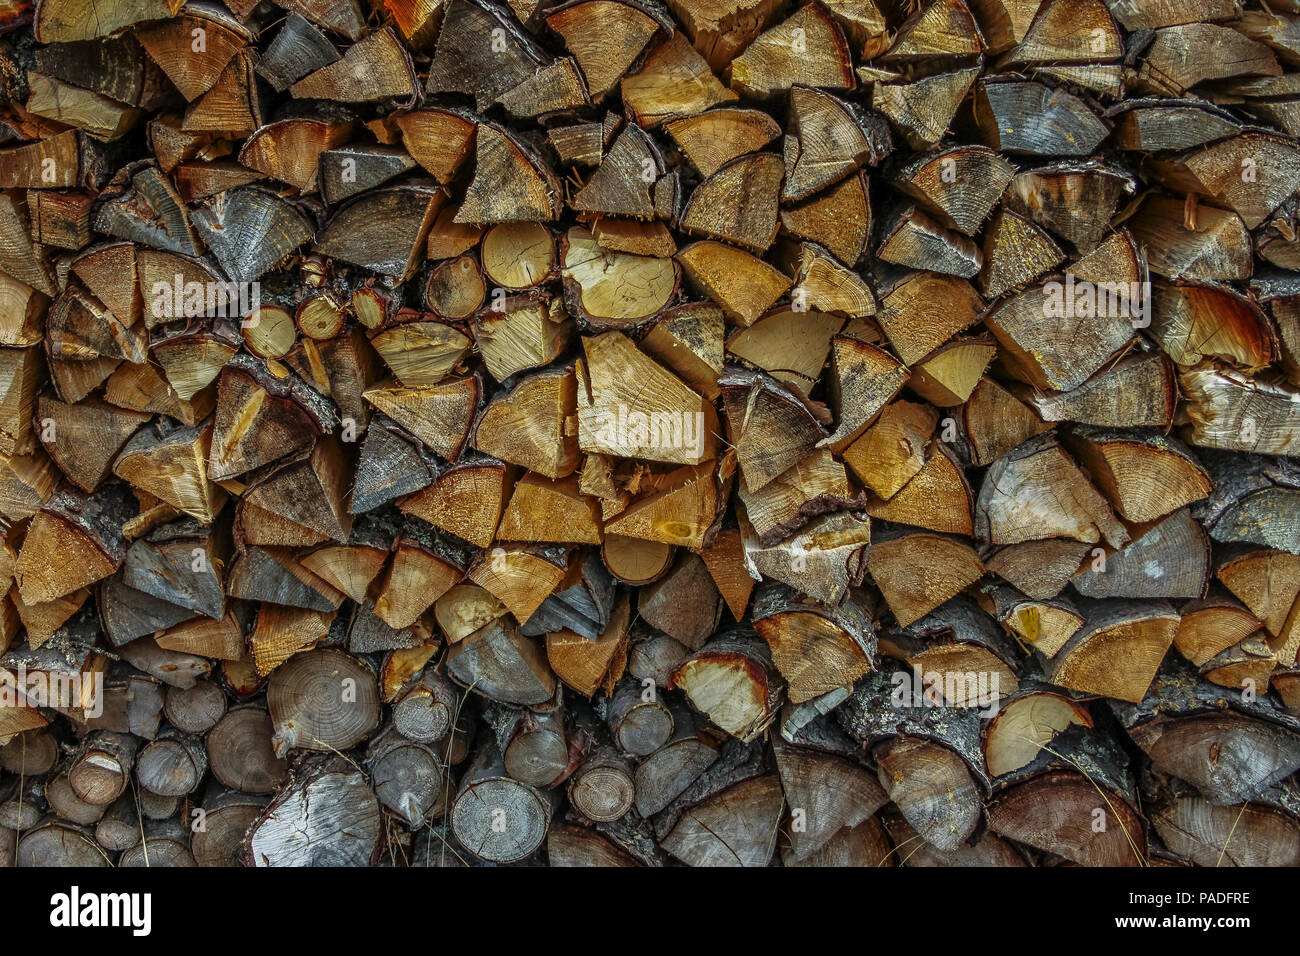 Closeup of a pile of firewood stacked ready for the winter image with copy space Stock Photo